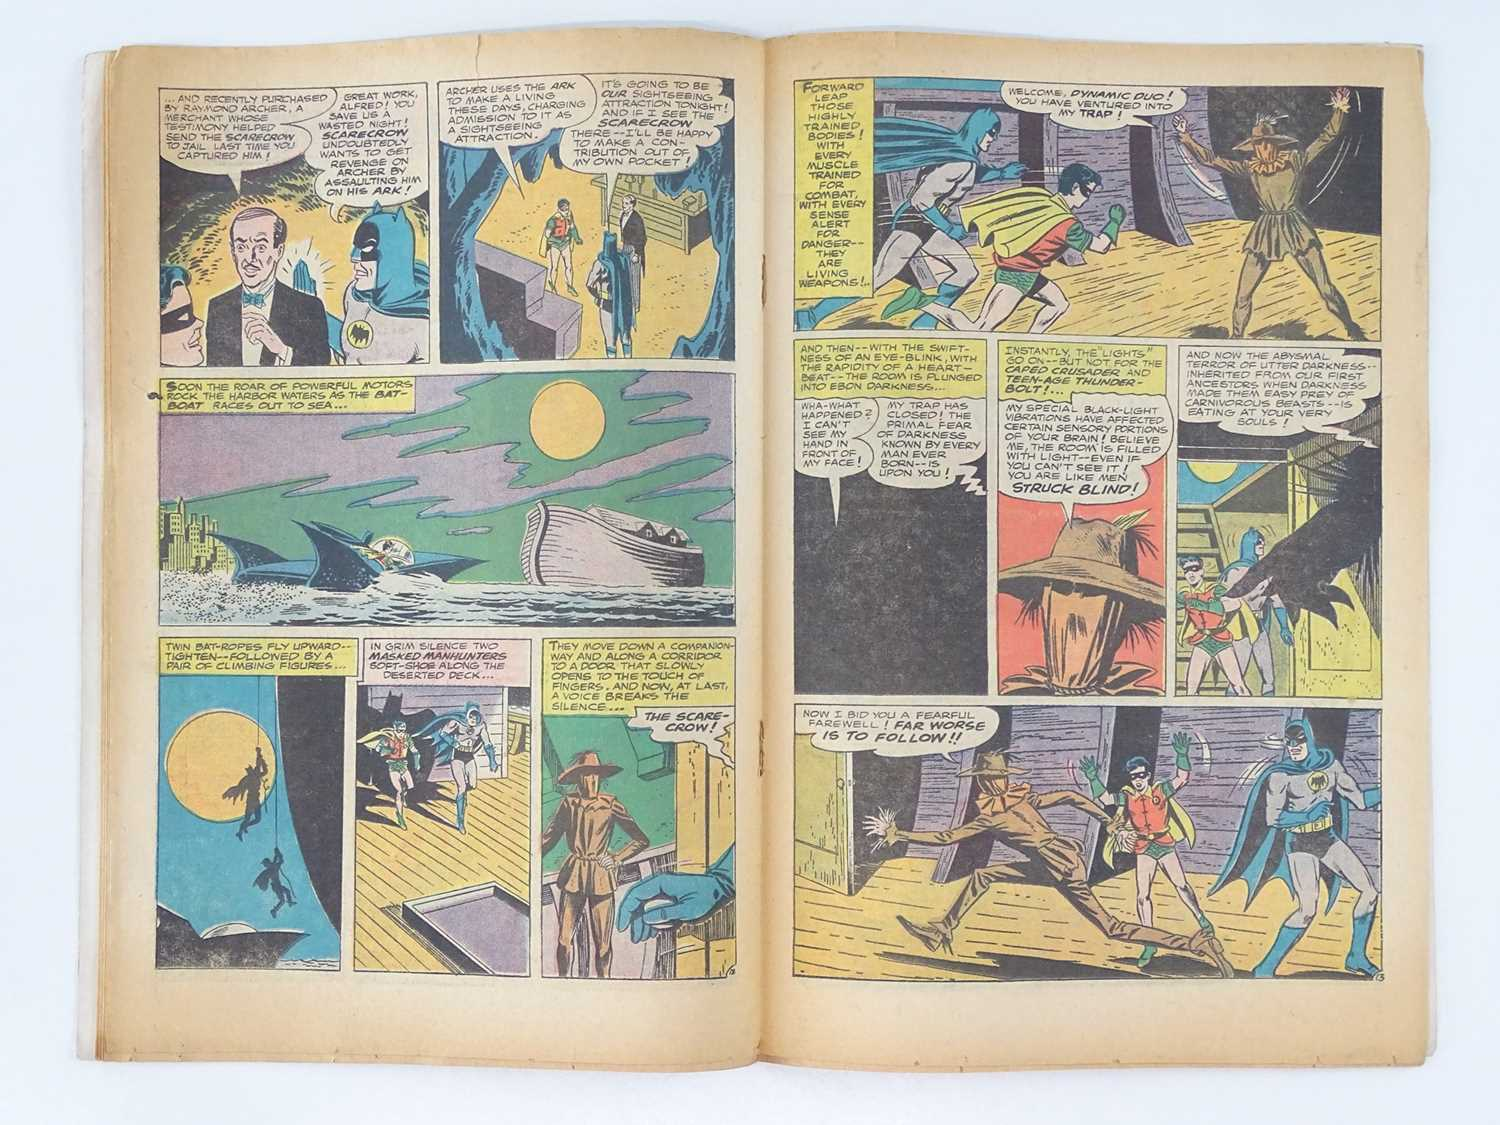 BATMAN #189 - (1967 - DC - UK Cover Price) - KEY Book - First Silver Age appearance of the Scarecrow - Image 5 of 10